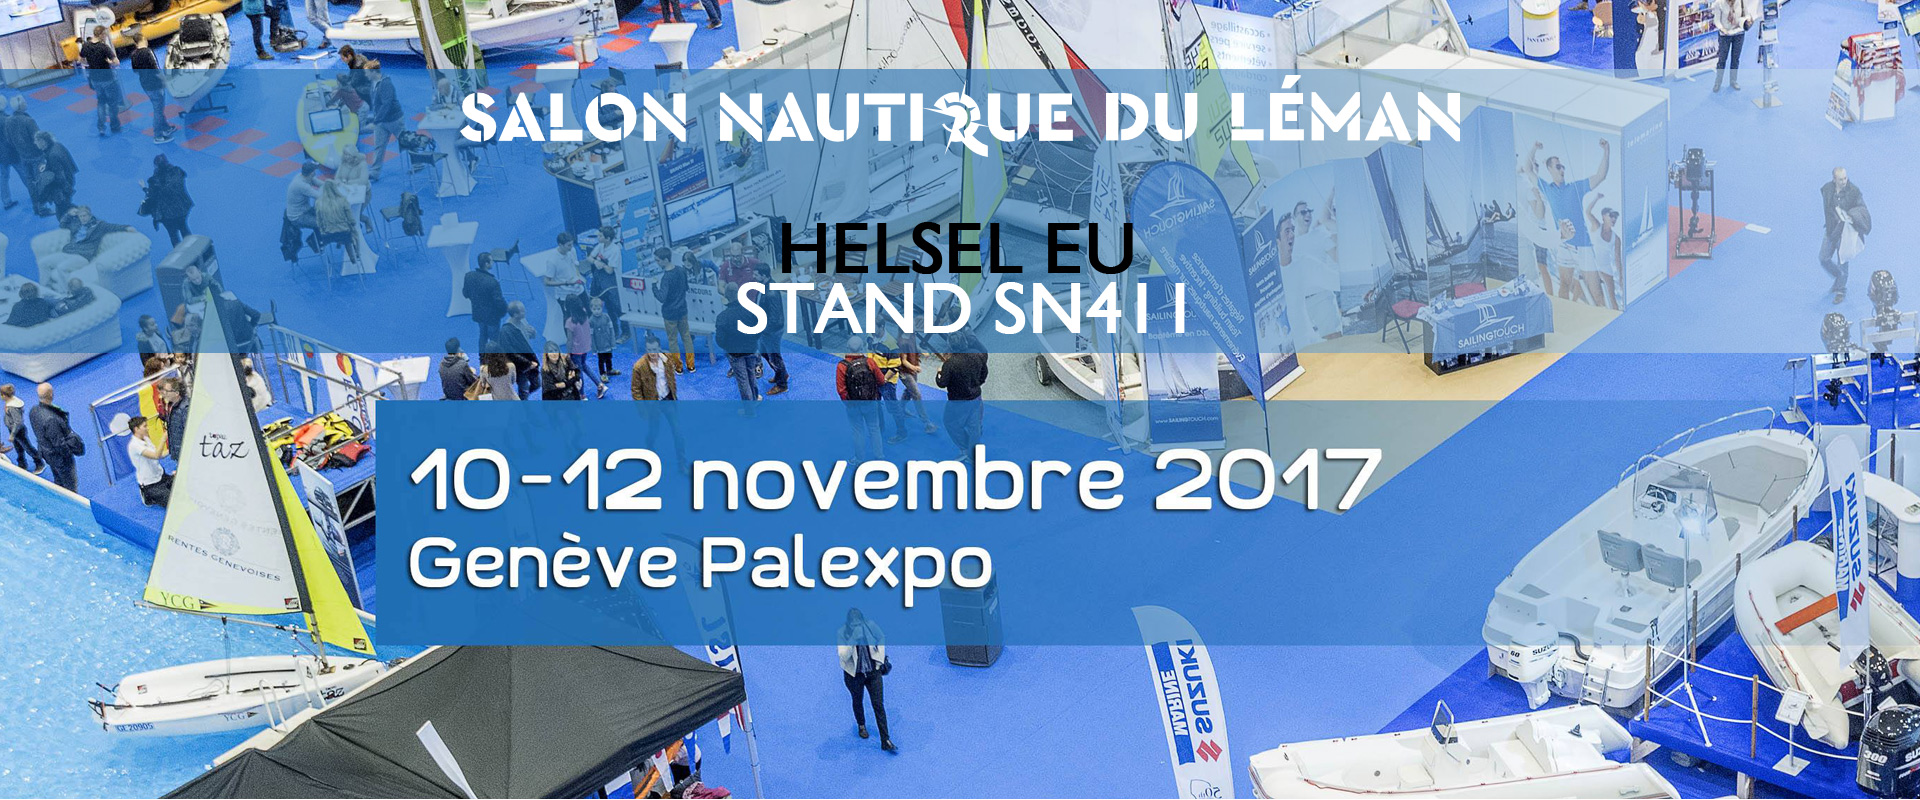 Helsel eu au salon nautique du l man gen ve helsel eu for Salon nautique geneve